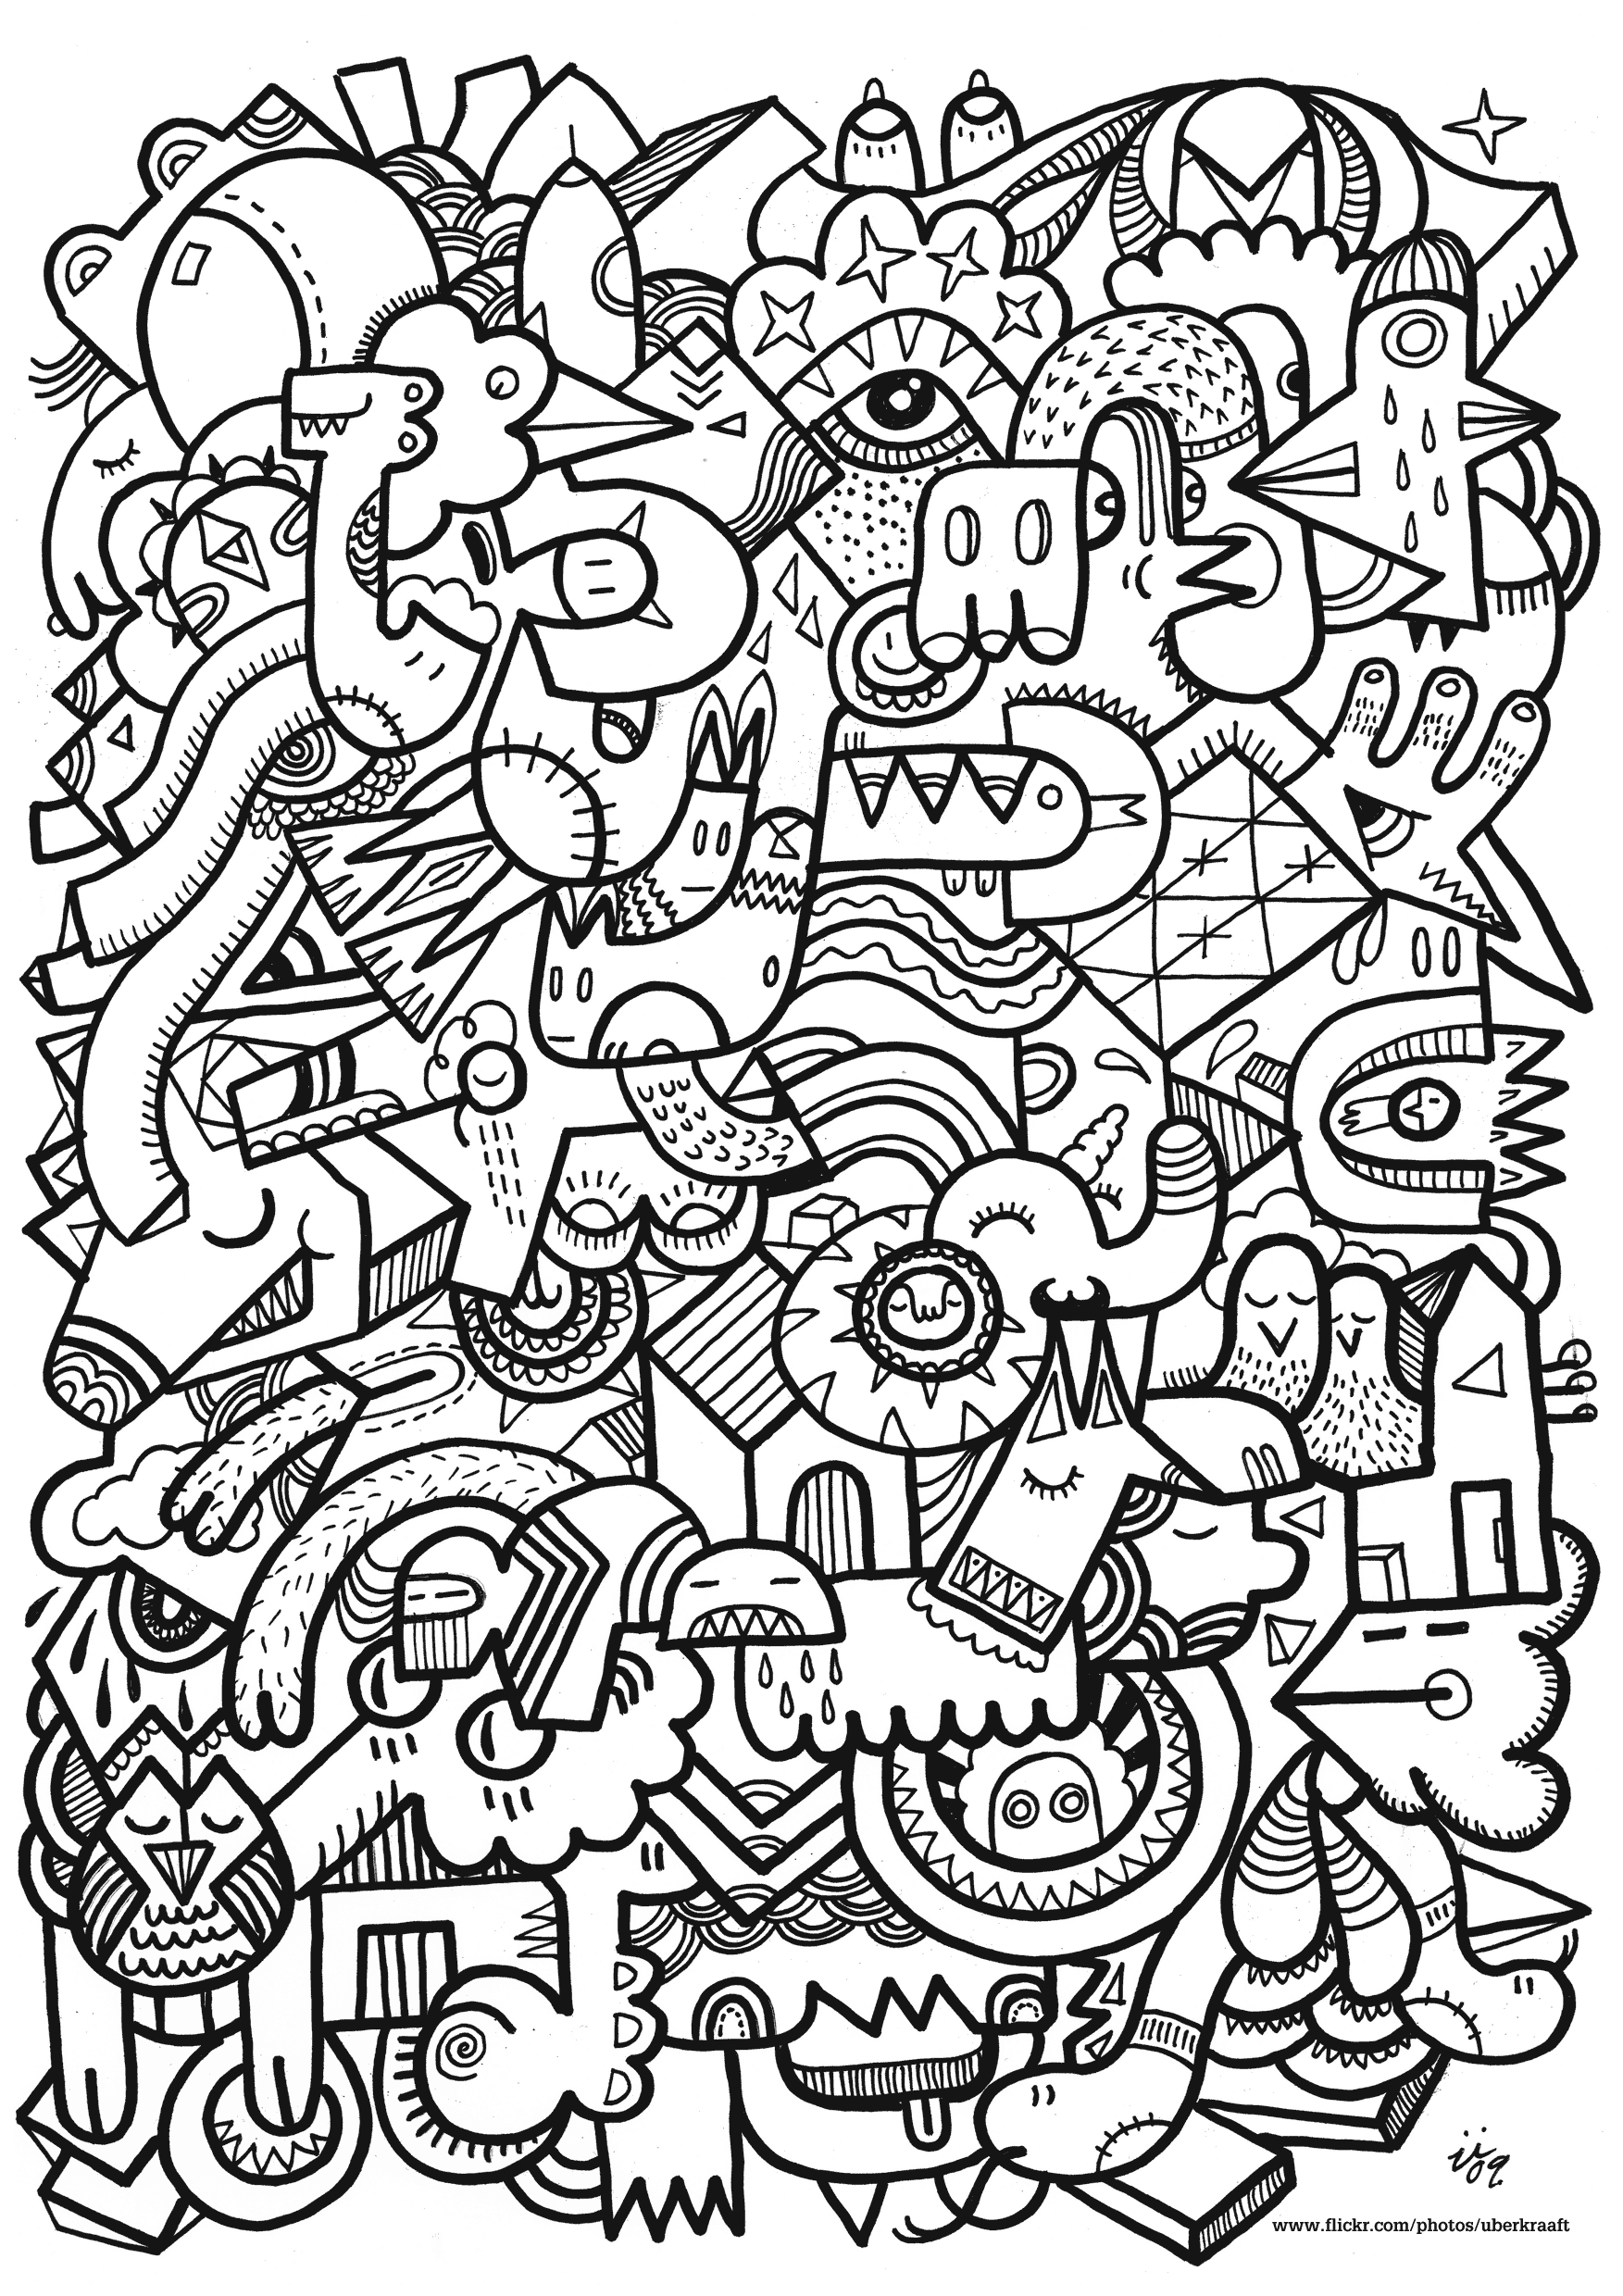 Coloring pages to print designs -  Free Coloring Pages For Adults Printable Hard To